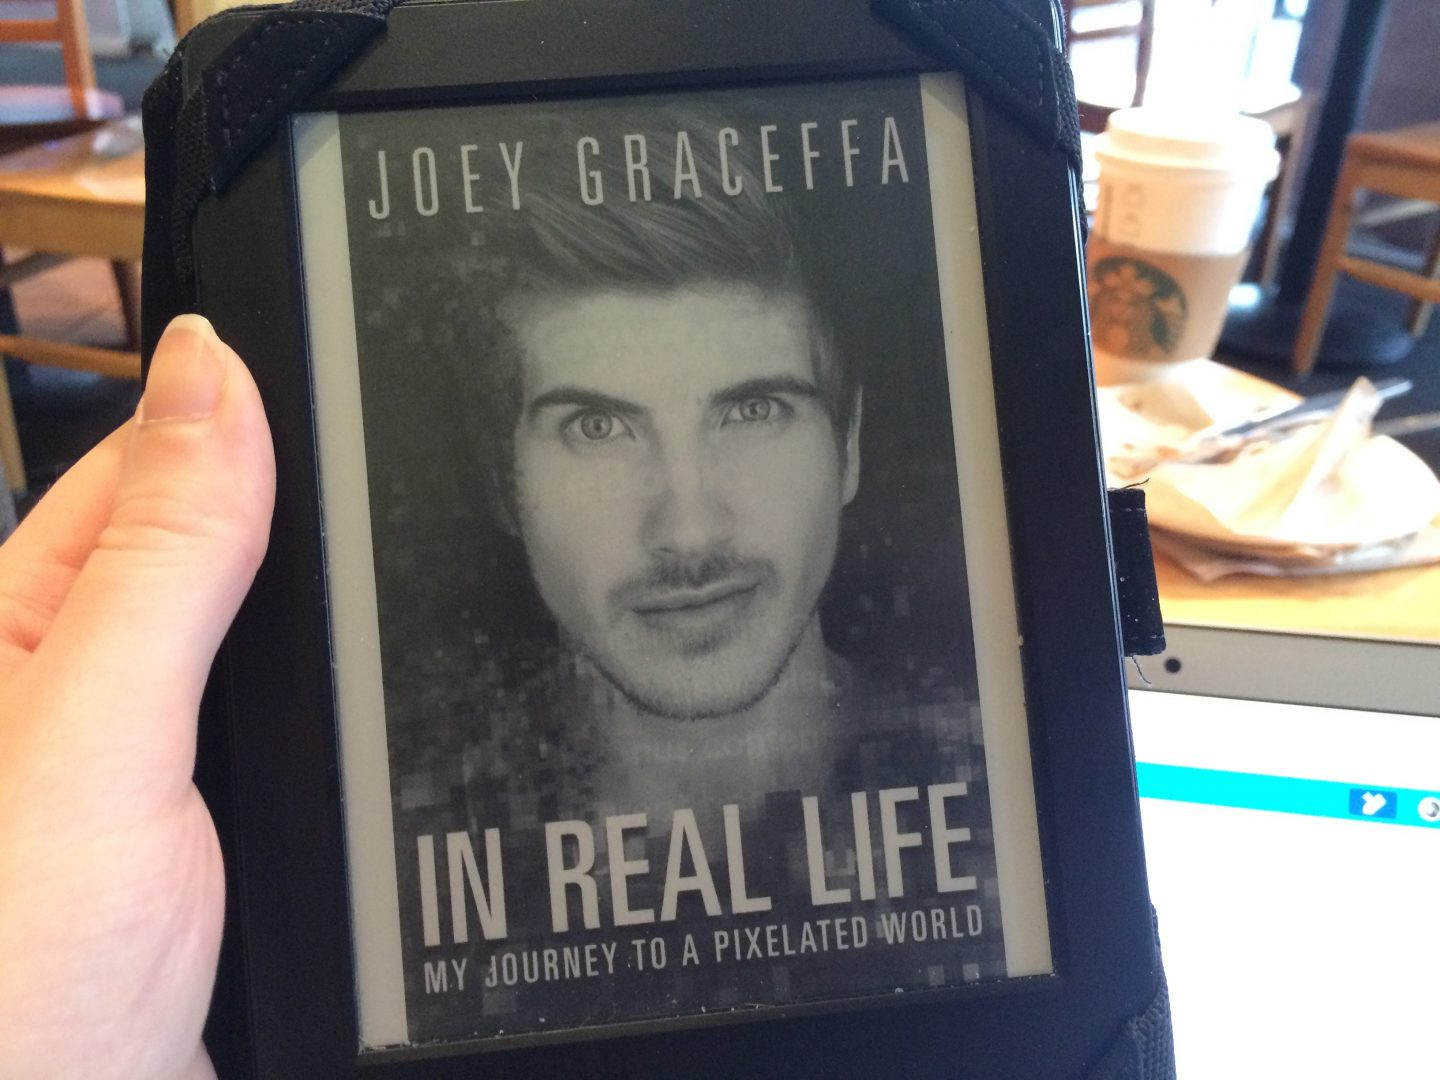 In Real Life: My Journey to a Pixelated World by Joey Graceffa Review